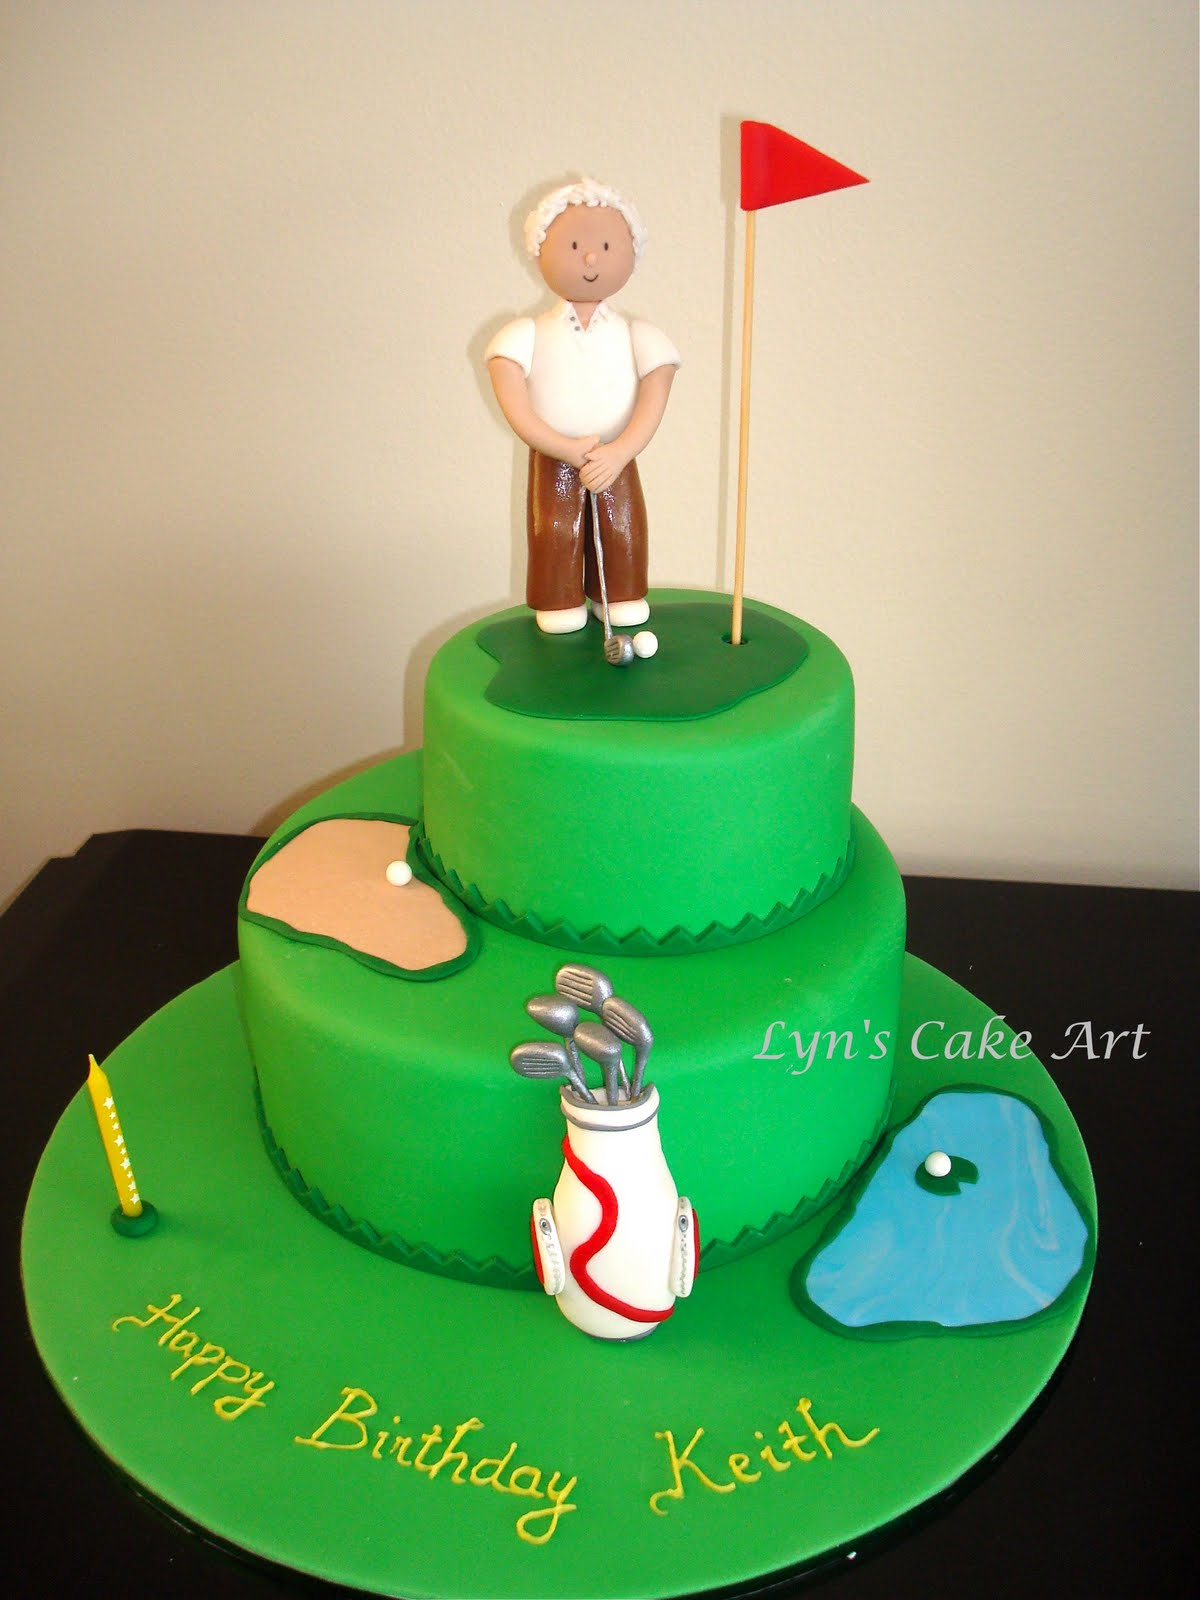 Cake Art Supplies Castle Hill : Lyn s Cake Art: Golf